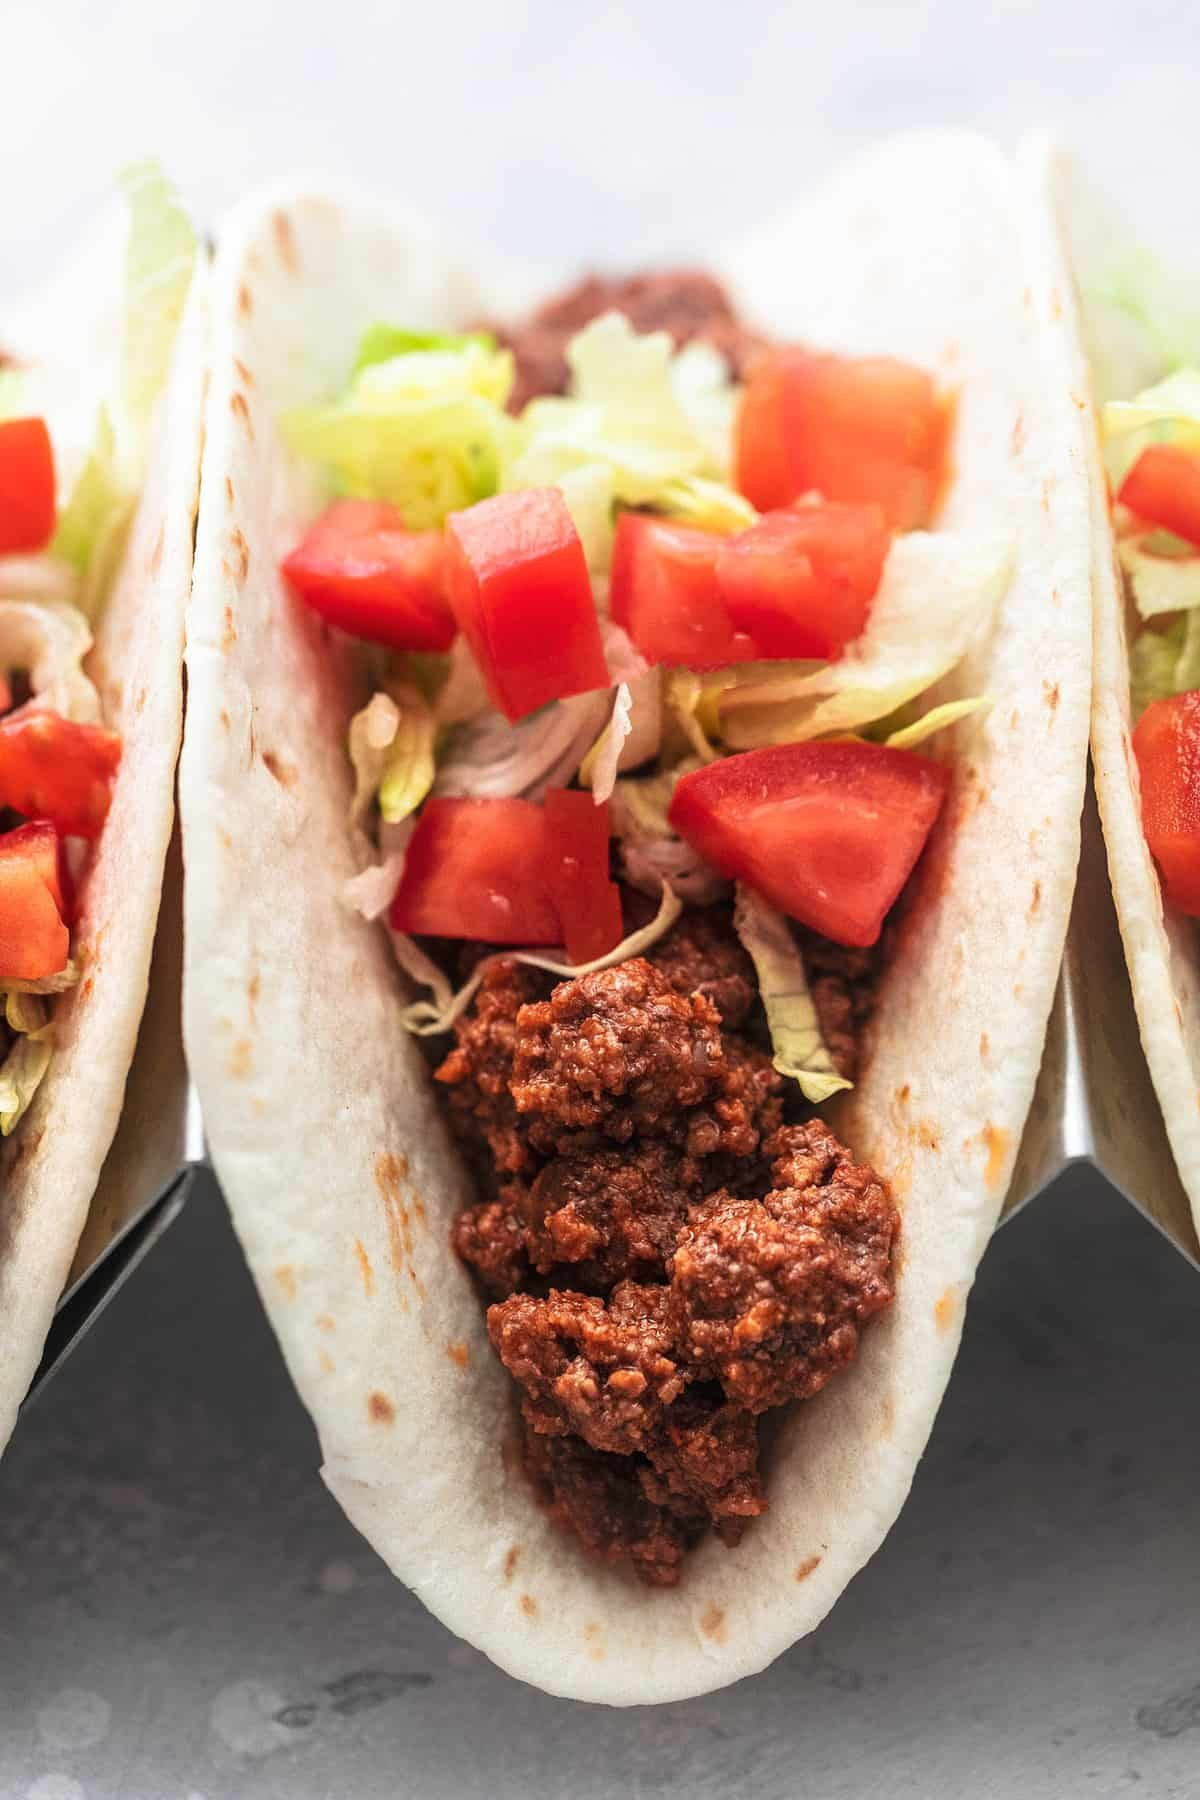 close up of a ground beef taco with toppings in a taco holder with more tacos on the sides.